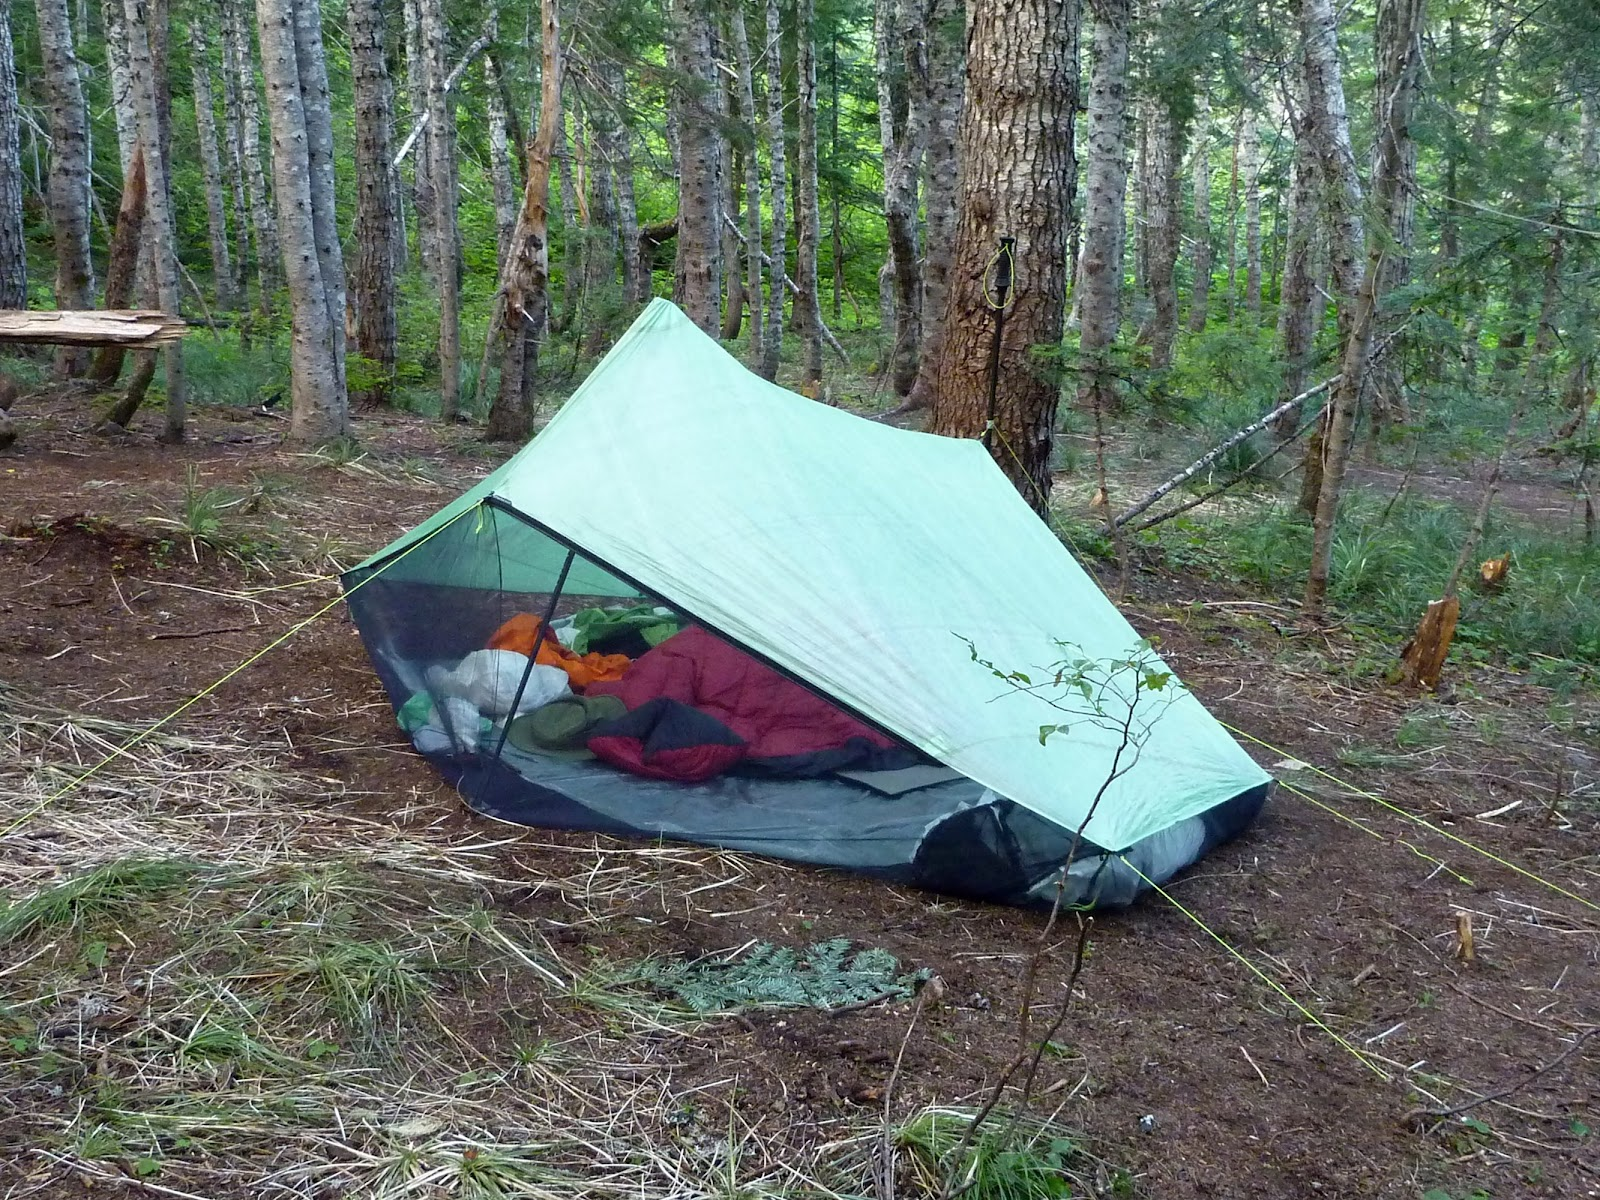 Product Review - ZPacks™ Hexamid Twin Tent & Mountain UltraLight: Product Review - ZPacks™ Hexamid Twin Tent